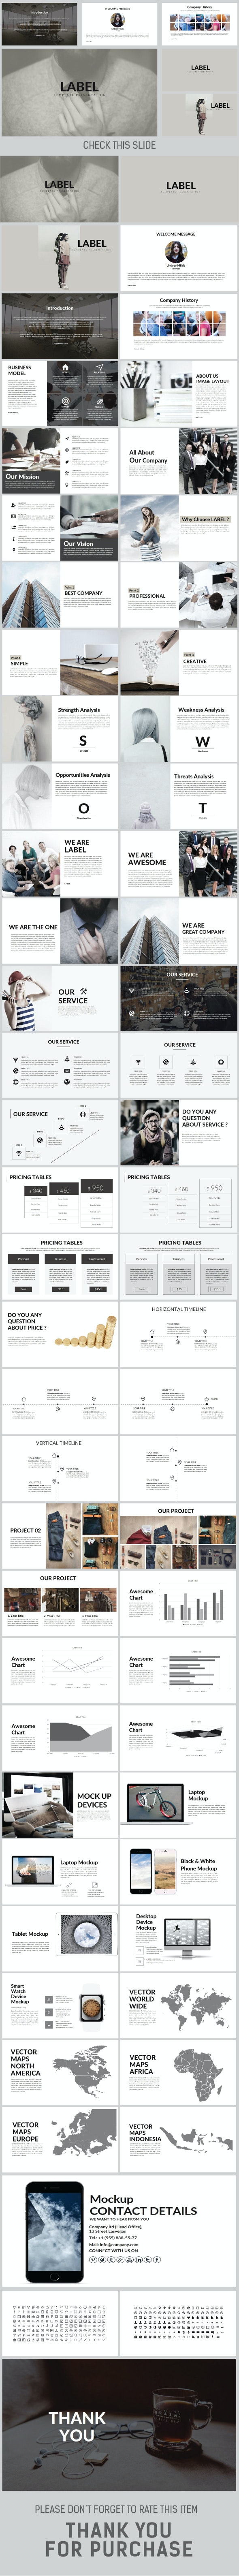 LABEL Power Point Template - Creative PowerPoint Templates